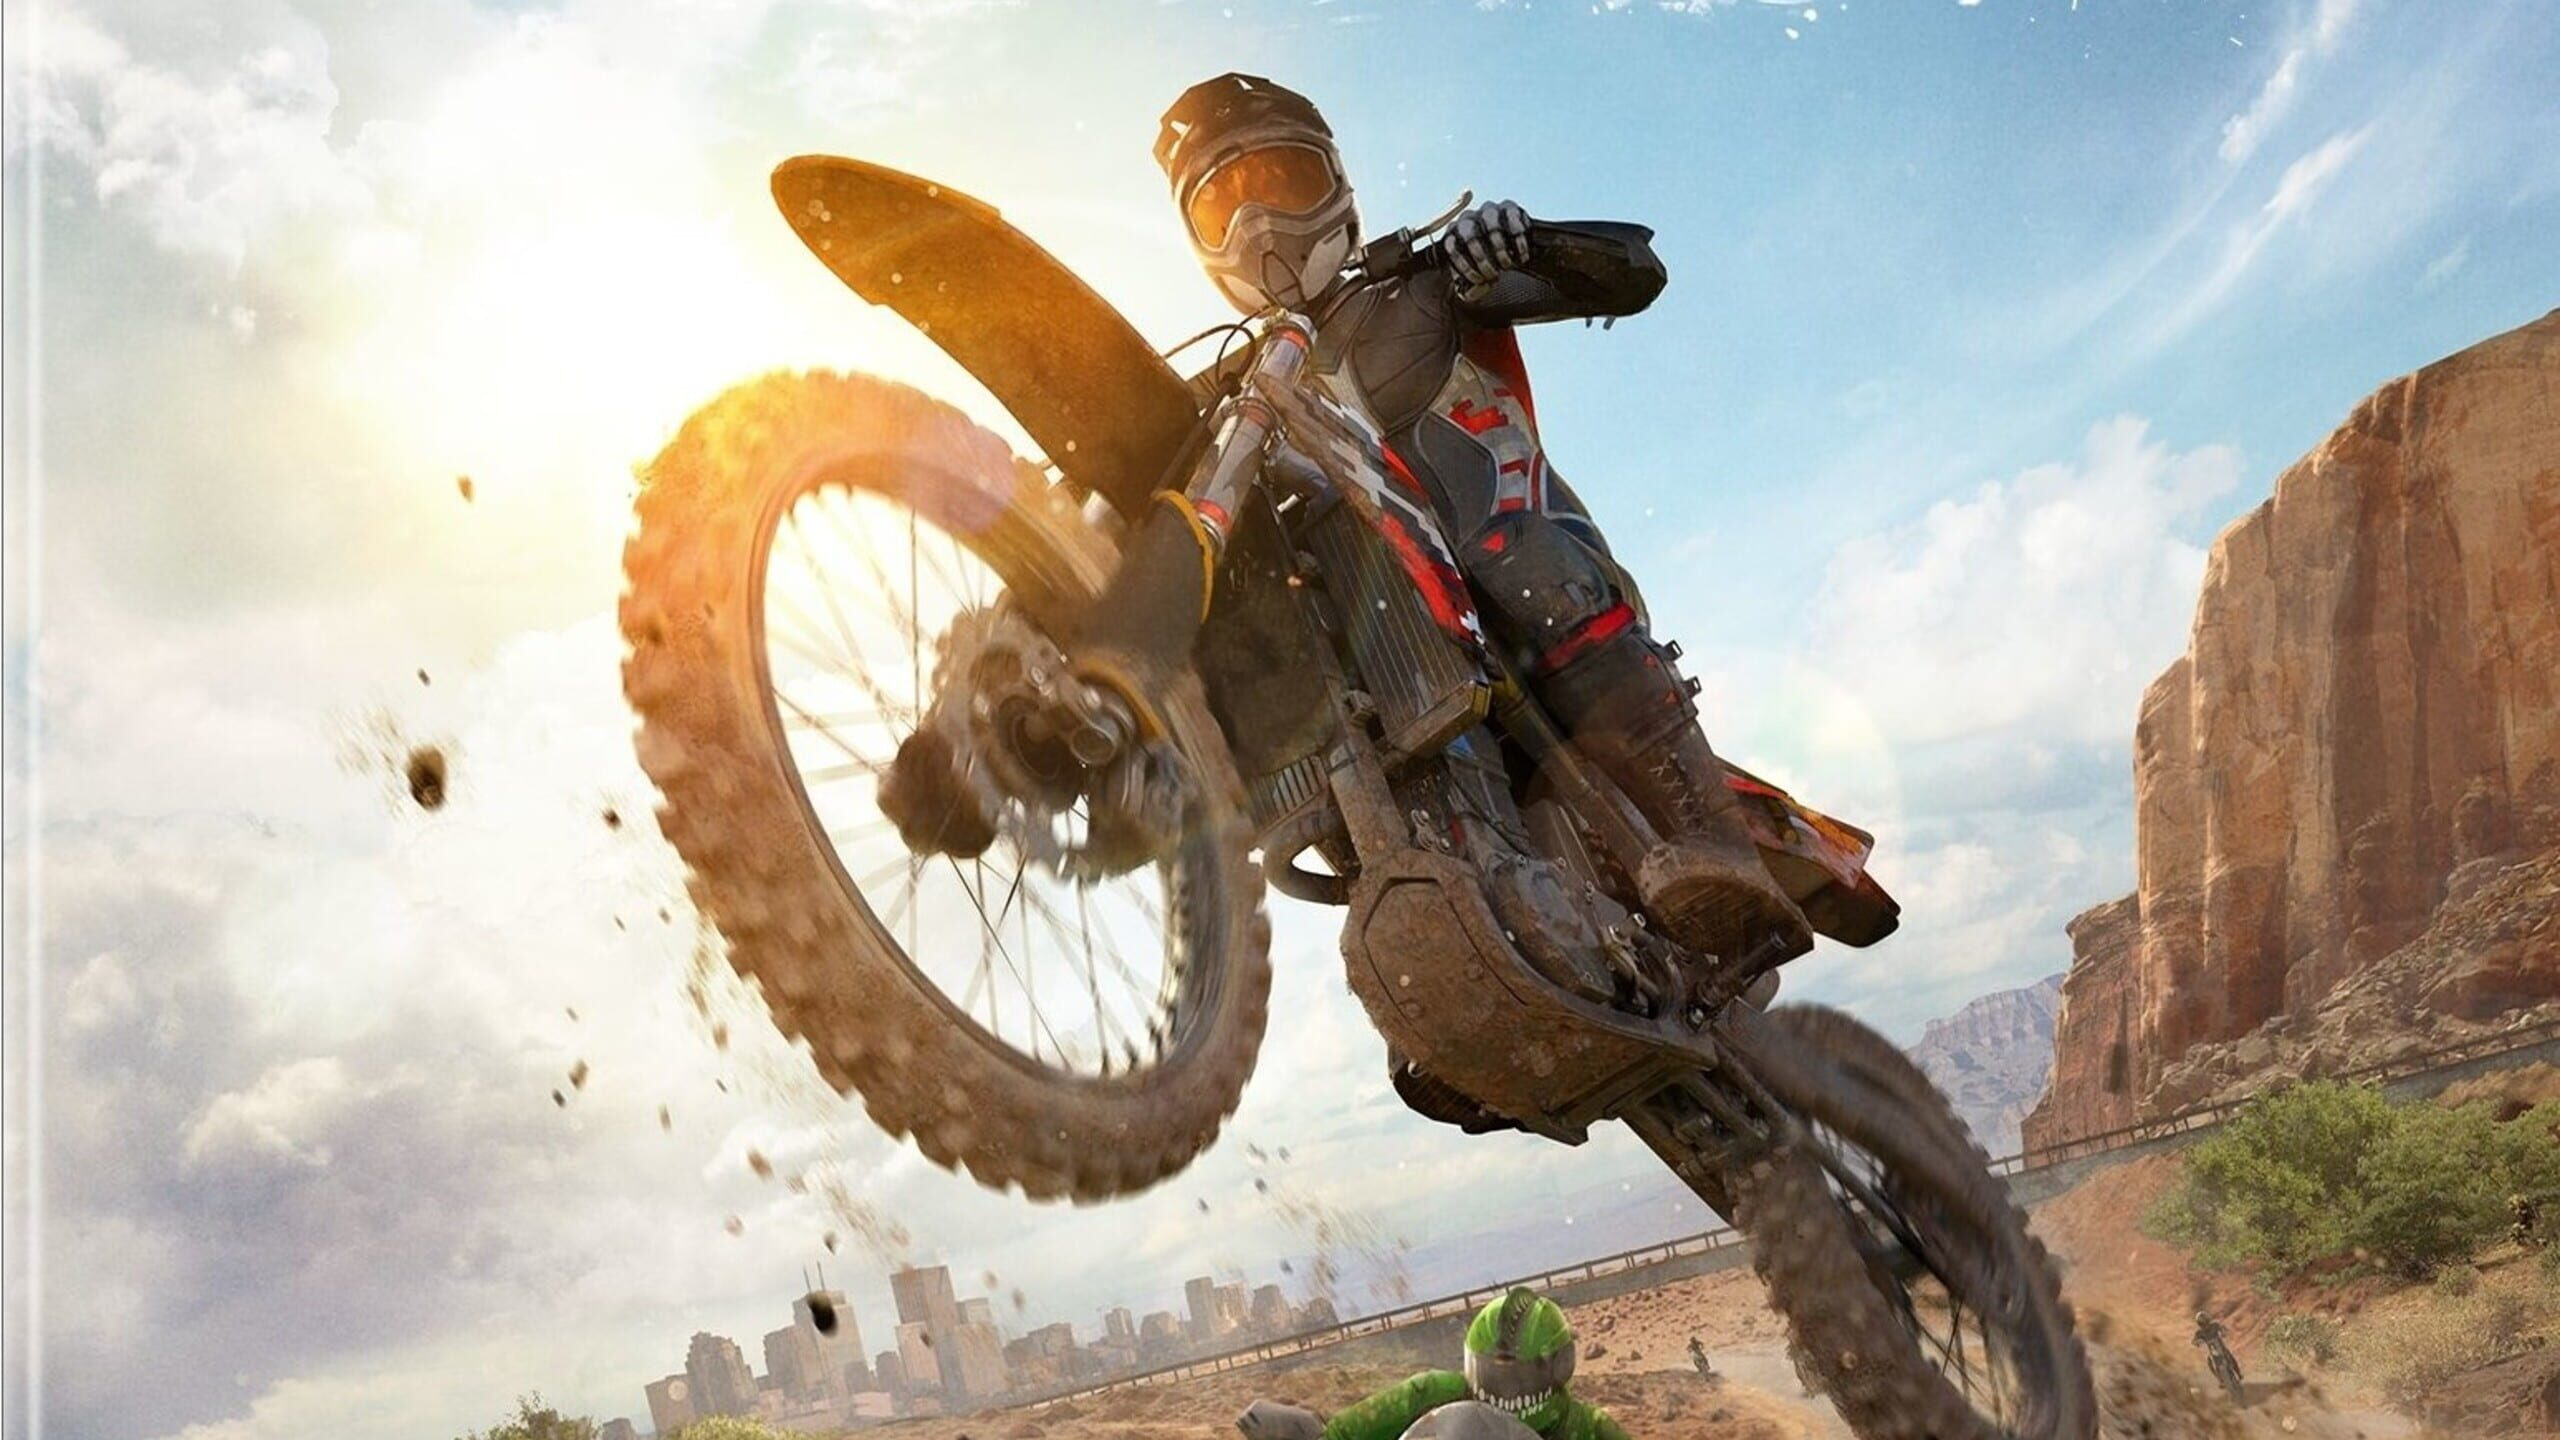 game cover art for Moto Racer 4